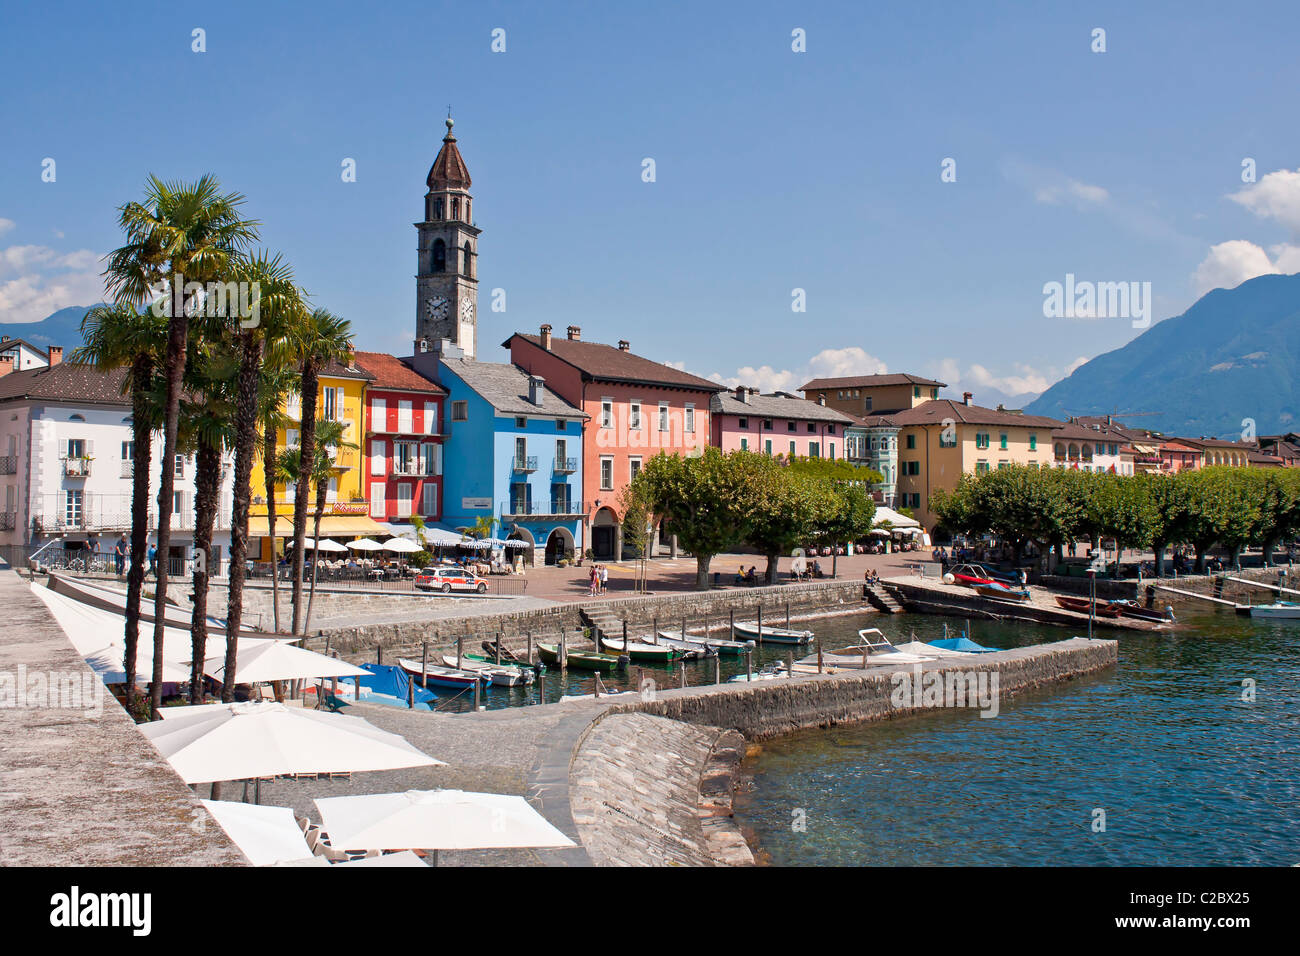 Ascona in Ticino, Switzerland - Stock Image